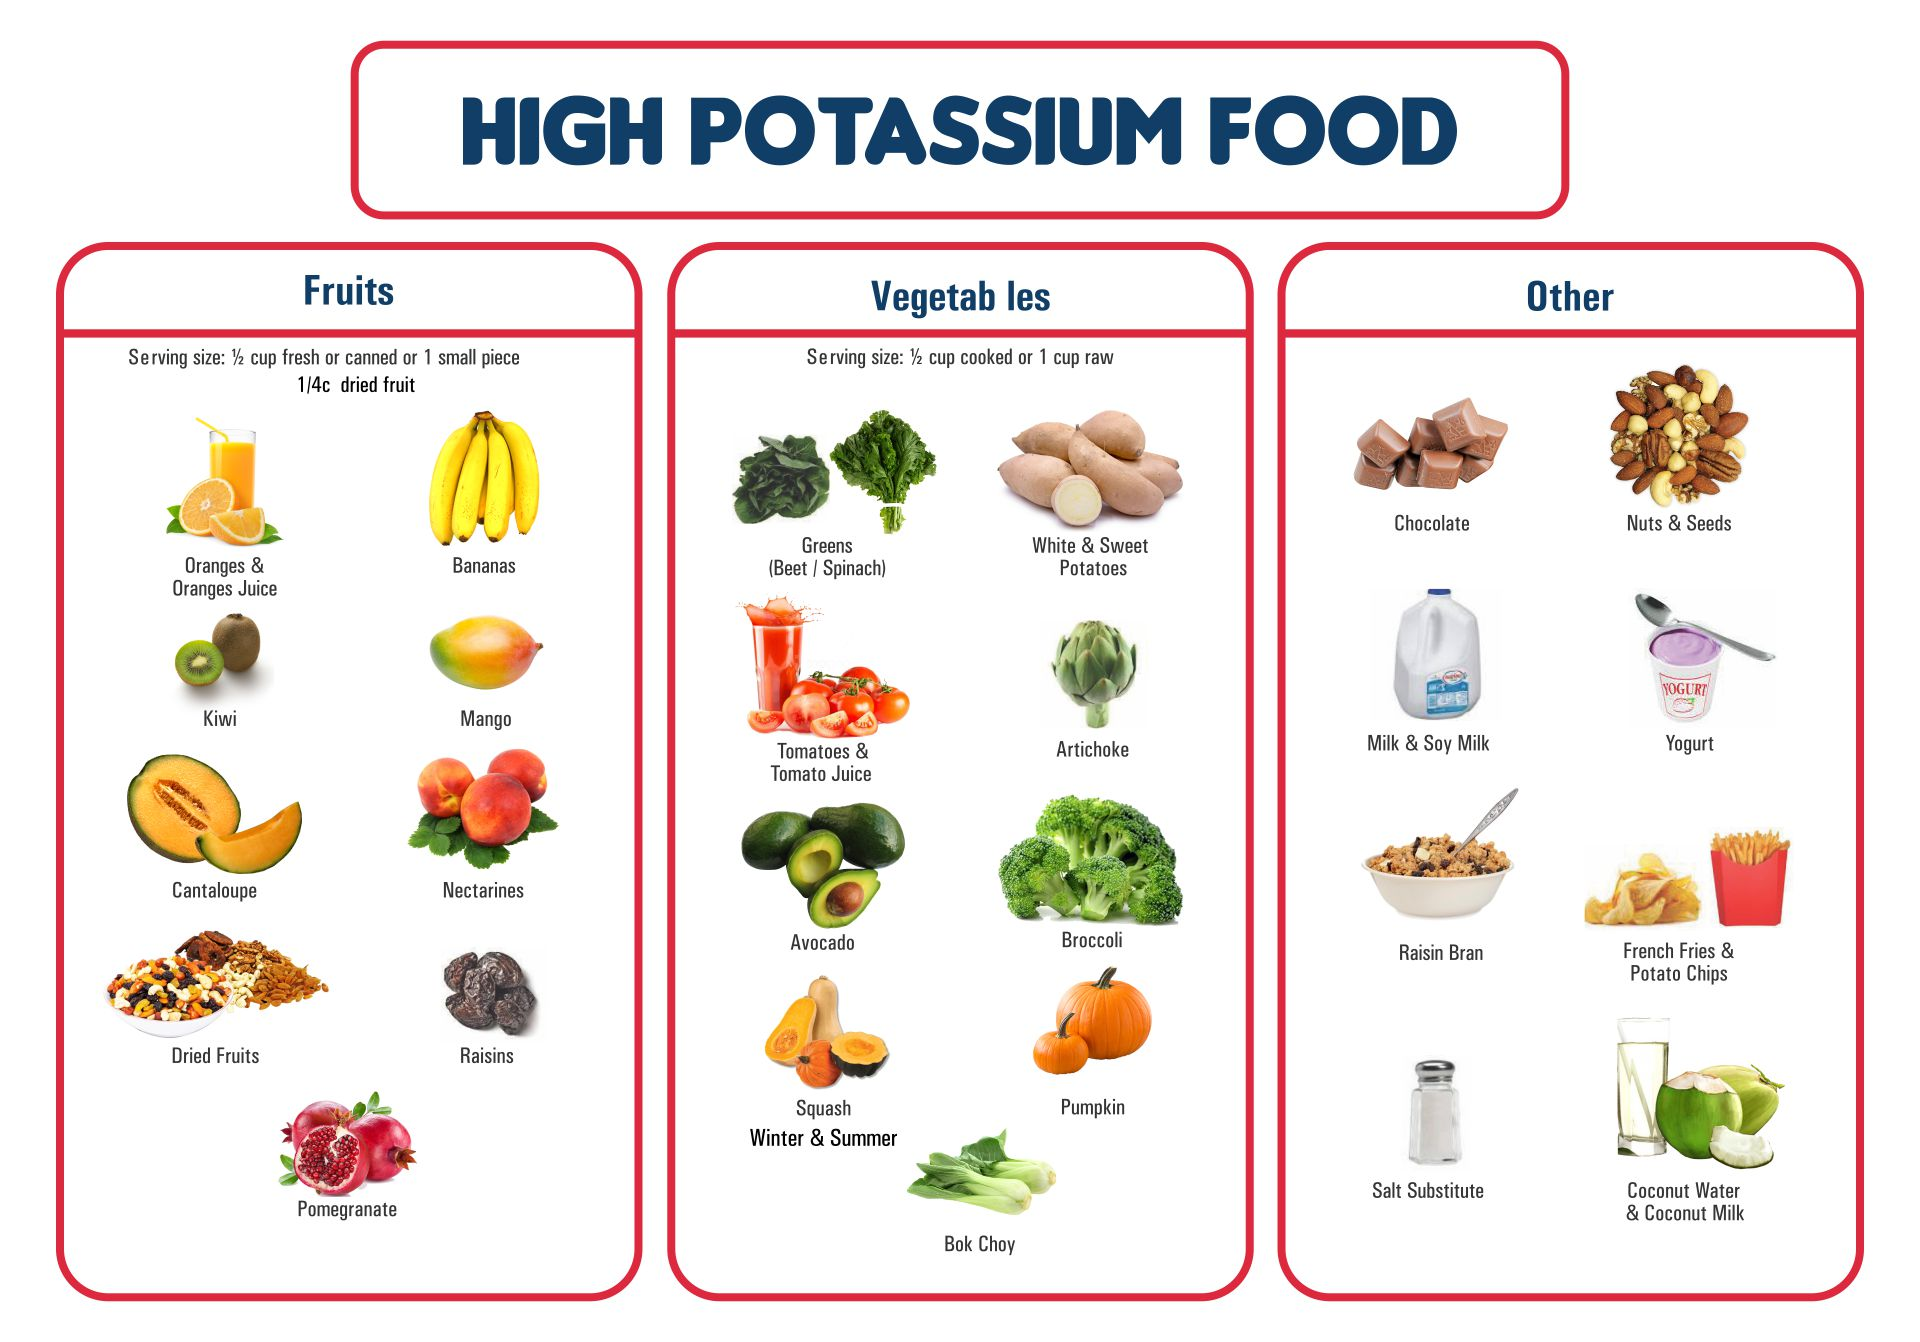 Impeccable image with regard to potassium rich foods list printable